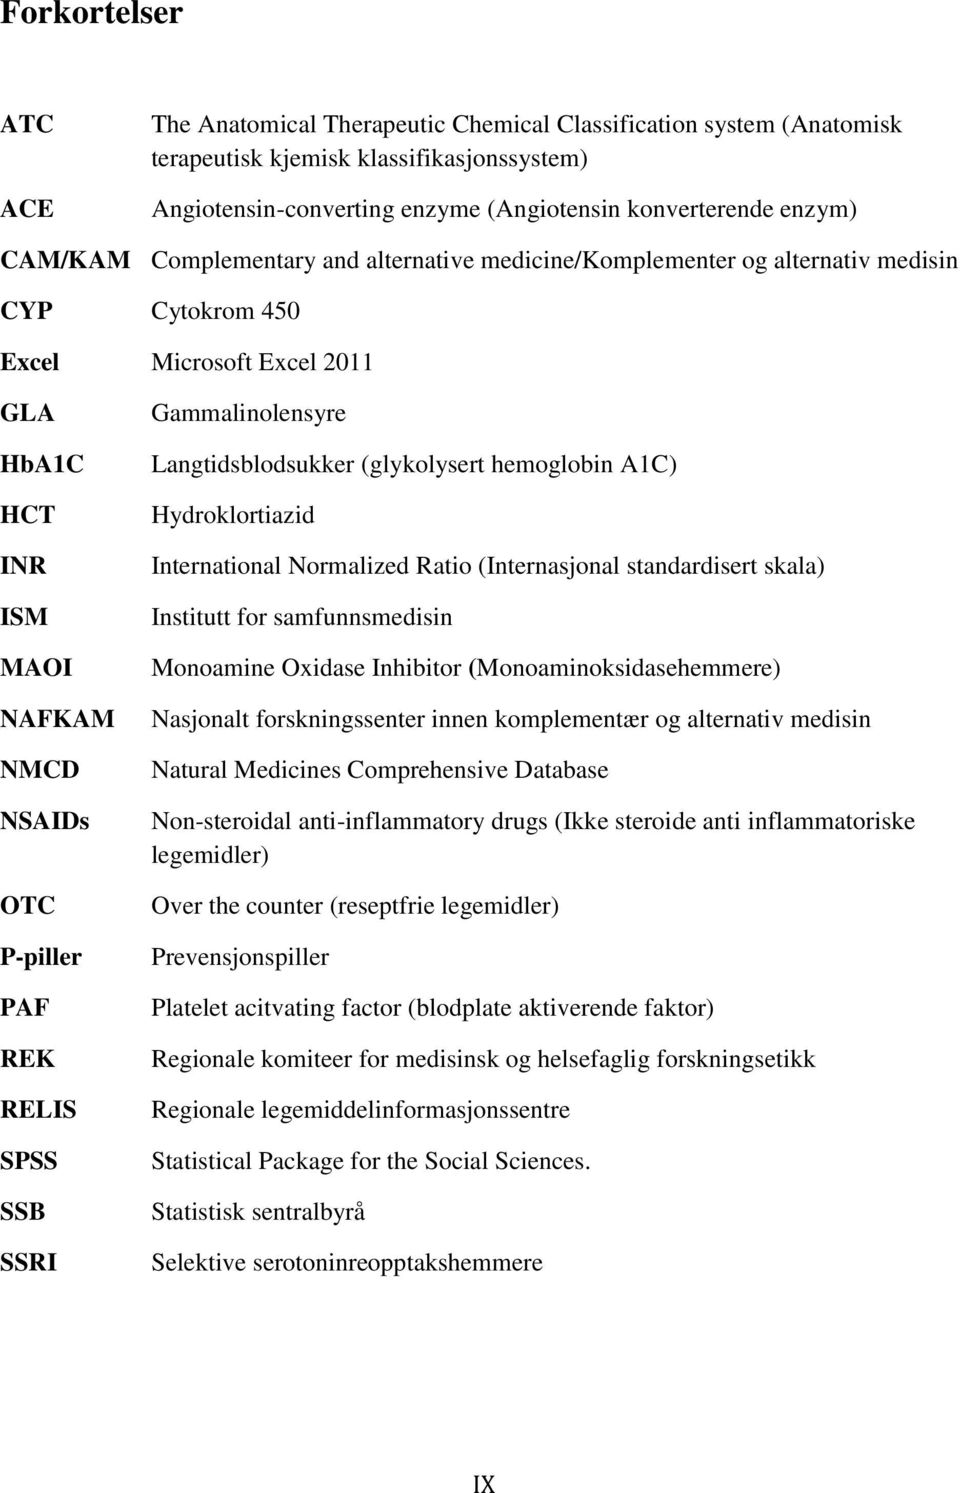 SPSS SSB SSRI Gammalinolensyre Langtidsblodsukker (glykolysert hemoglobin A1C) Hydroklortiazid International Normalized Ratio (Internasjonal standardisert skala) Institutt for samfunnsmedisin